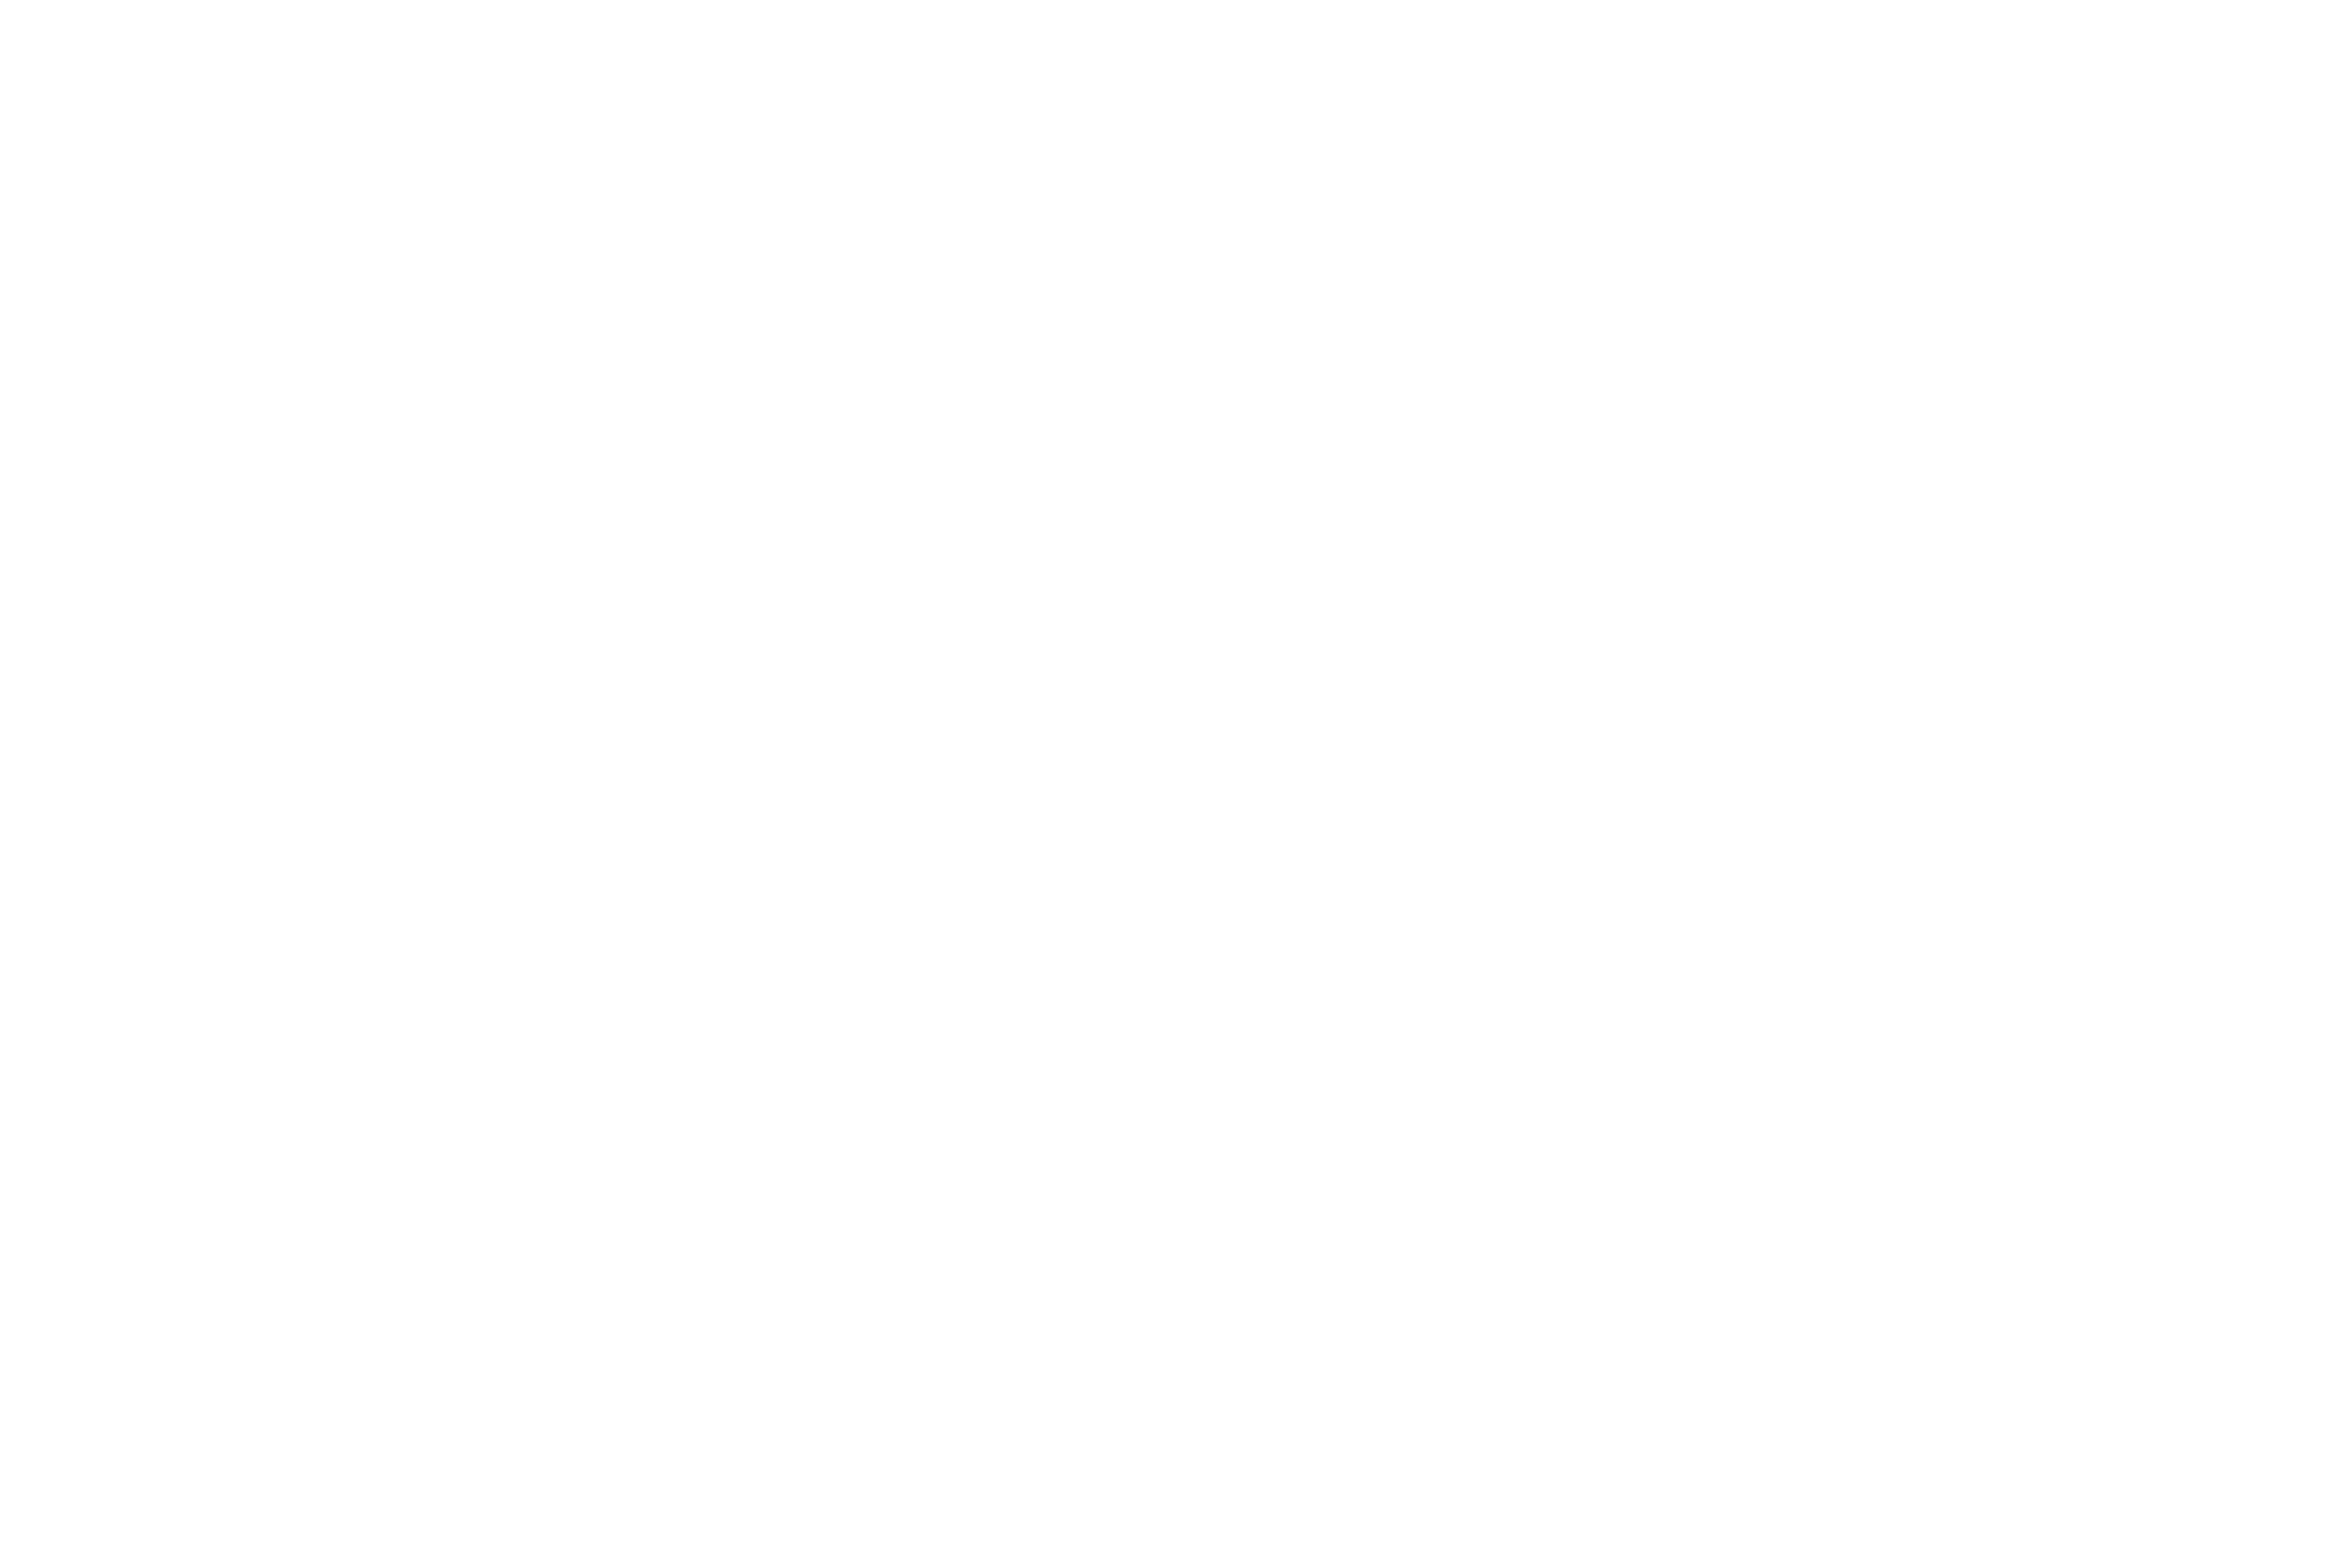 Acts 29 Logo - US West-02-white.png